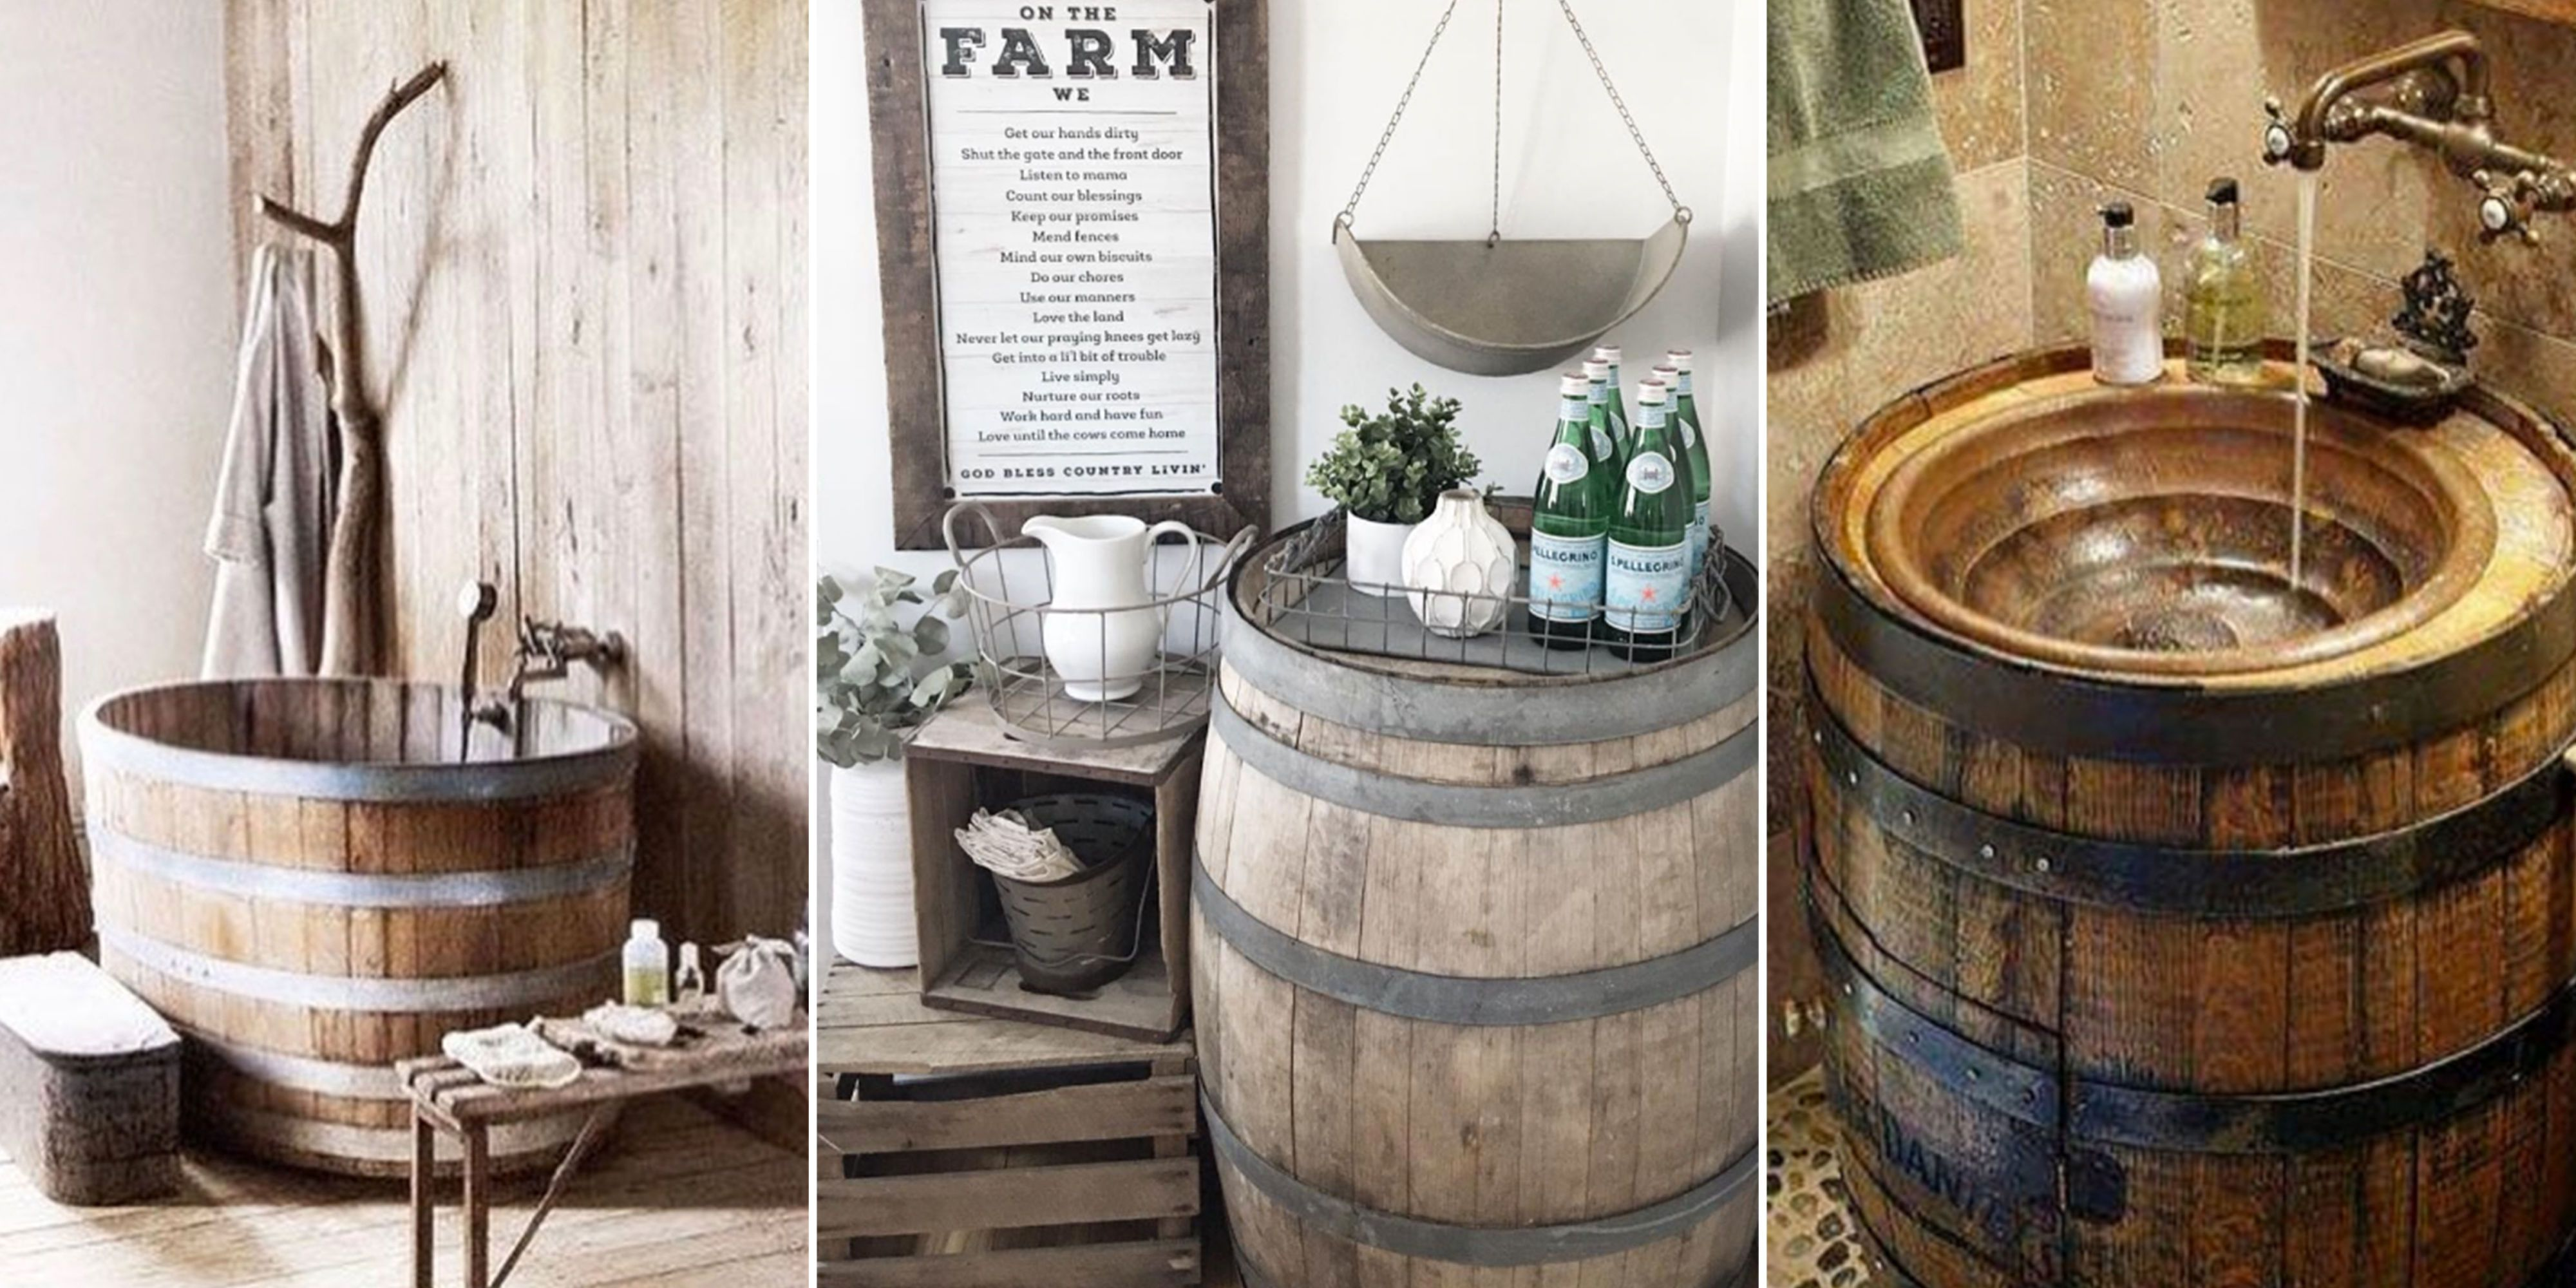 35 Genius Ways People Are Repurposing Whiskey & Wine Barrels - How